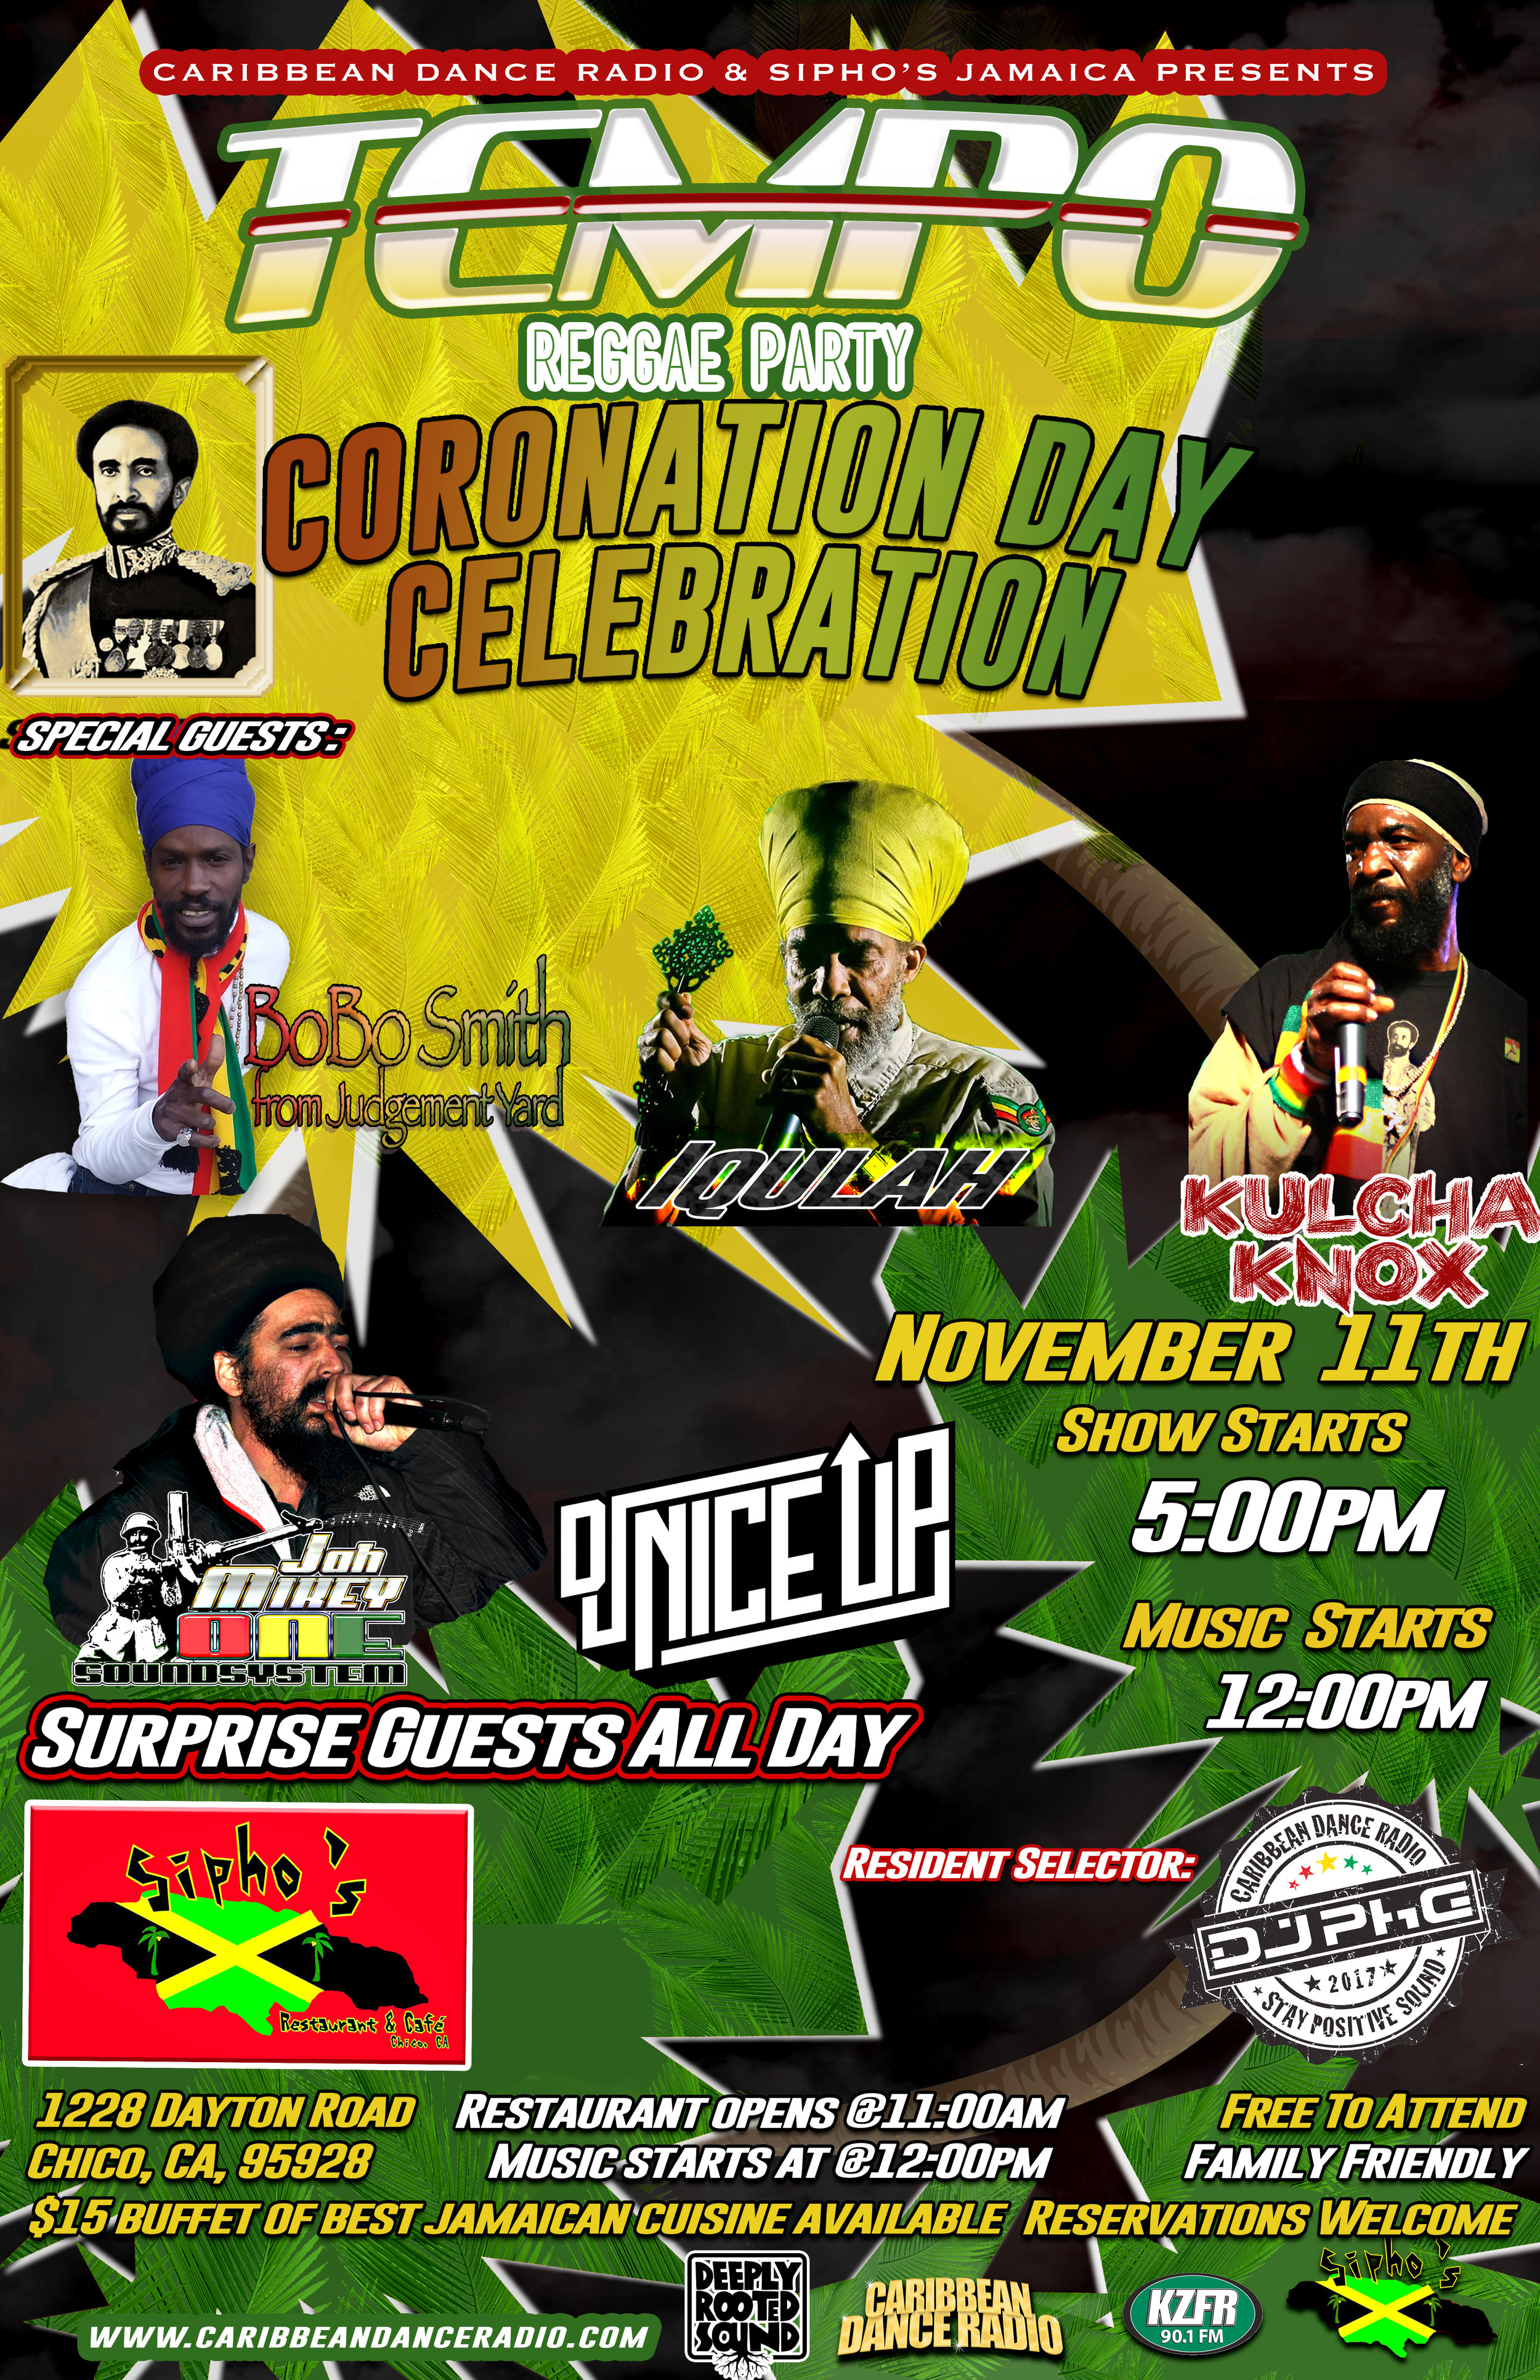 We celebrate  #CoronationDay at our November installment of TEMPO with MCs/Performers Bobo Smith, IQulah Rastafari  Kulcha Knox Dixon , DJ NiceUp [Matthew Amistani], and showcasing his exclusive dubplate selection, JAH MIKEY ONE SOUND  November 11th is the date and we hope to see everyone's lovely faces and dancing feet!  Special guests always passing through!  We're bringing back the vibes for the Chico, CA massive and beyond. This a night featuring the genres of Reggae, Dancehall, Dub, and Roots featuring California's top DJ's and Soundsystems.  -Every 2nd Saturday of the Month   Taste the flavors of the islands with Sipho's signature $15.00 buffet available all day whether its Jerk Chicken, Curry Goat, Rasta Pasta, Ital Stew, Rice & Peas, or Escovitch Fish!  -Restaurant opens: 11:00am -DJ music begins st 12:00pm -Show starts: 5:00pm (reggae time) -Venue: Sipho's Jamaican Restaurant and Cafe -Special Guest DJs and Bands every month! -FREE to attend, must be at least 21 for alcohol